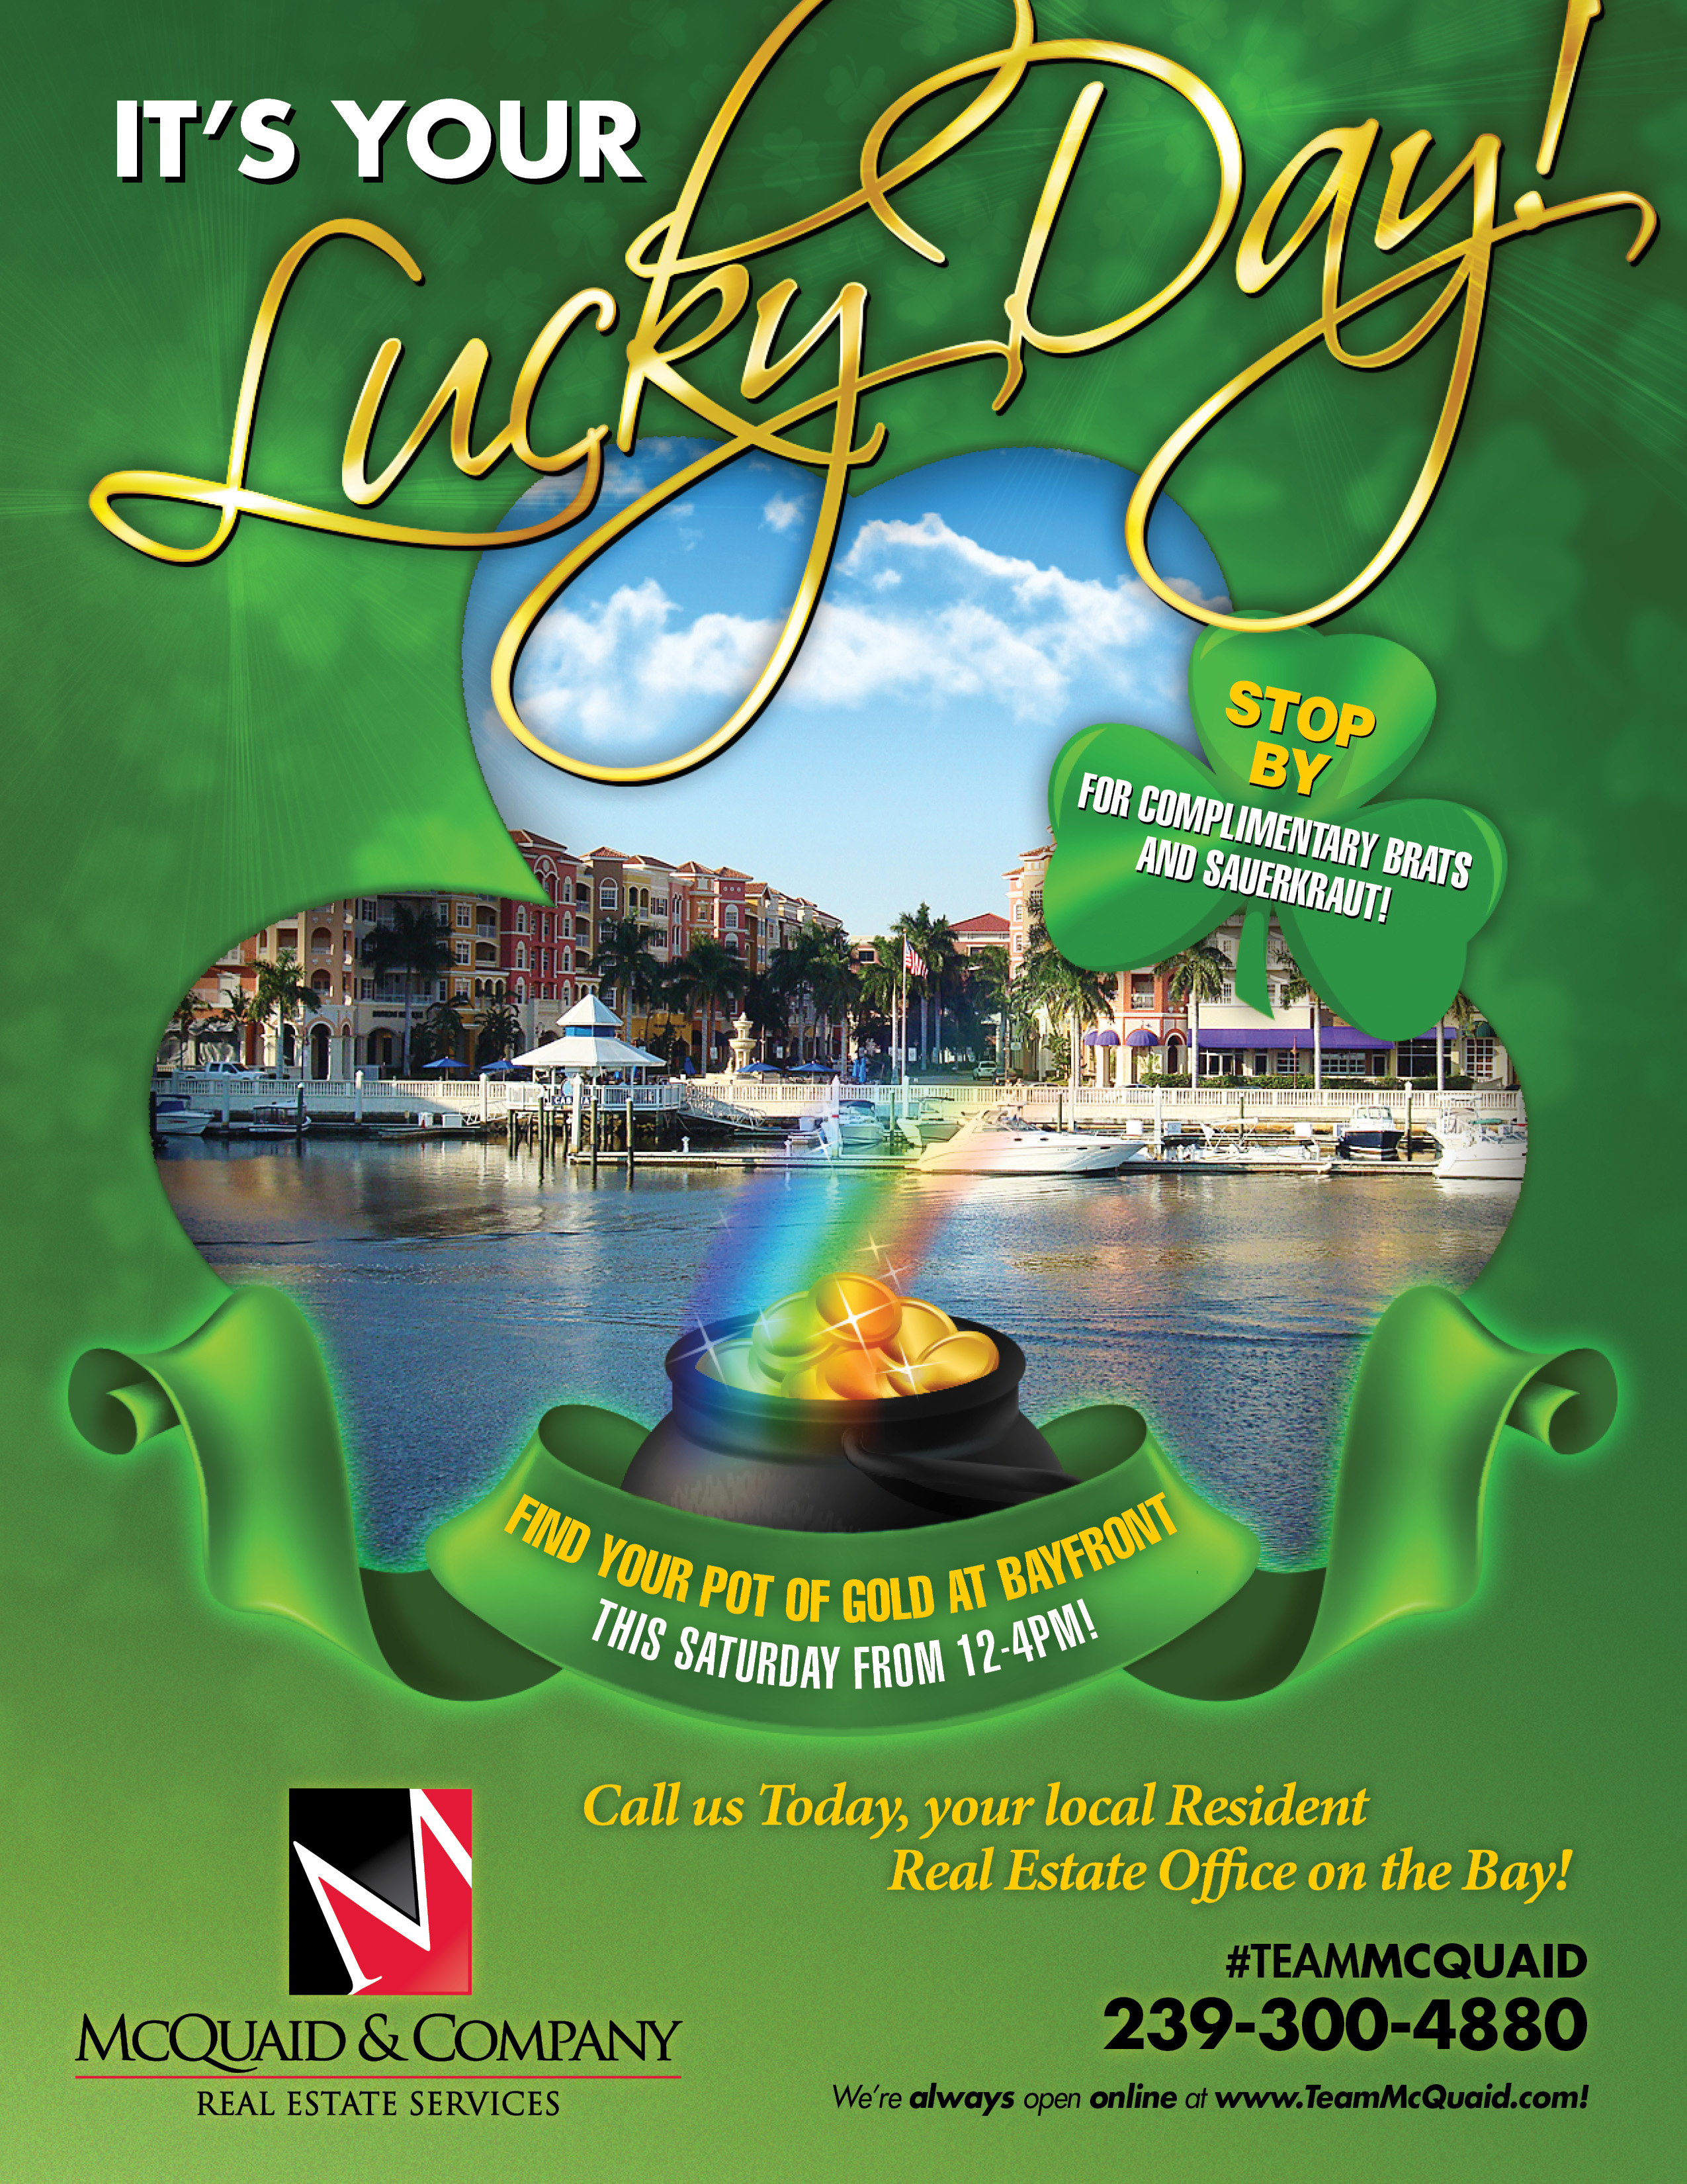 Find Your Pot of Gold at Bayfront!